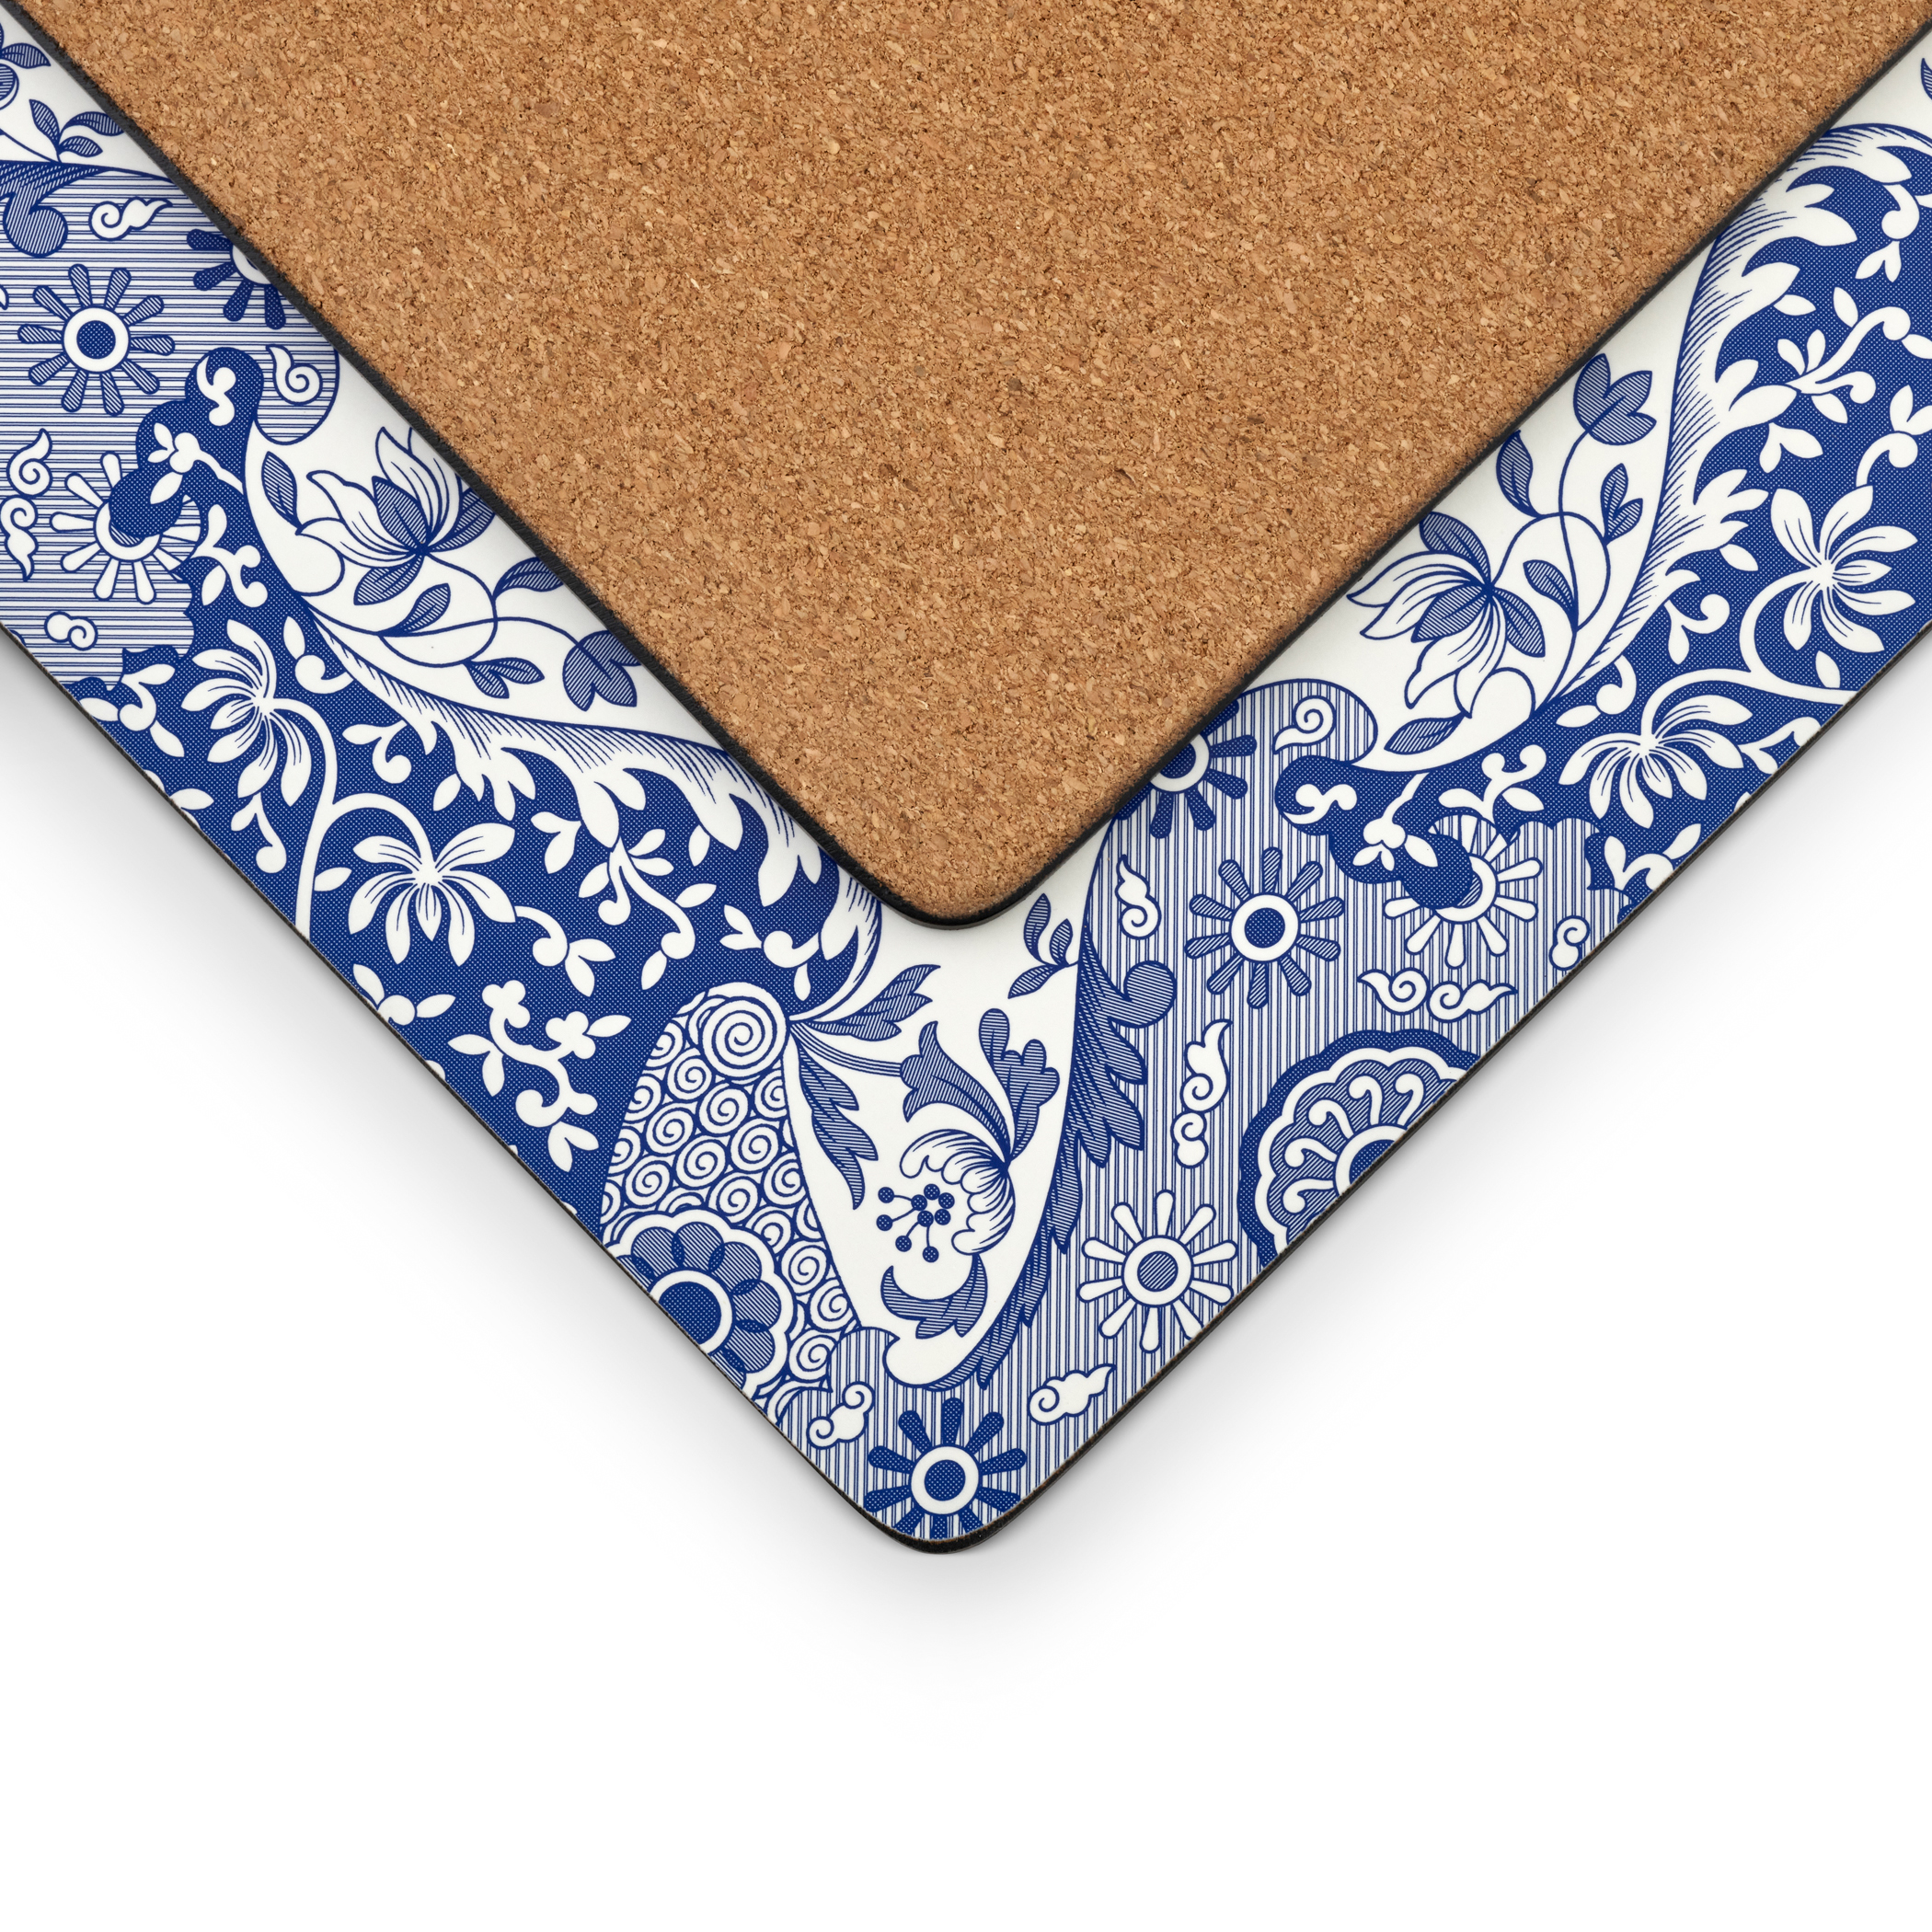 Pimpernel Blue Italian Placemats Set of 4 image number 2